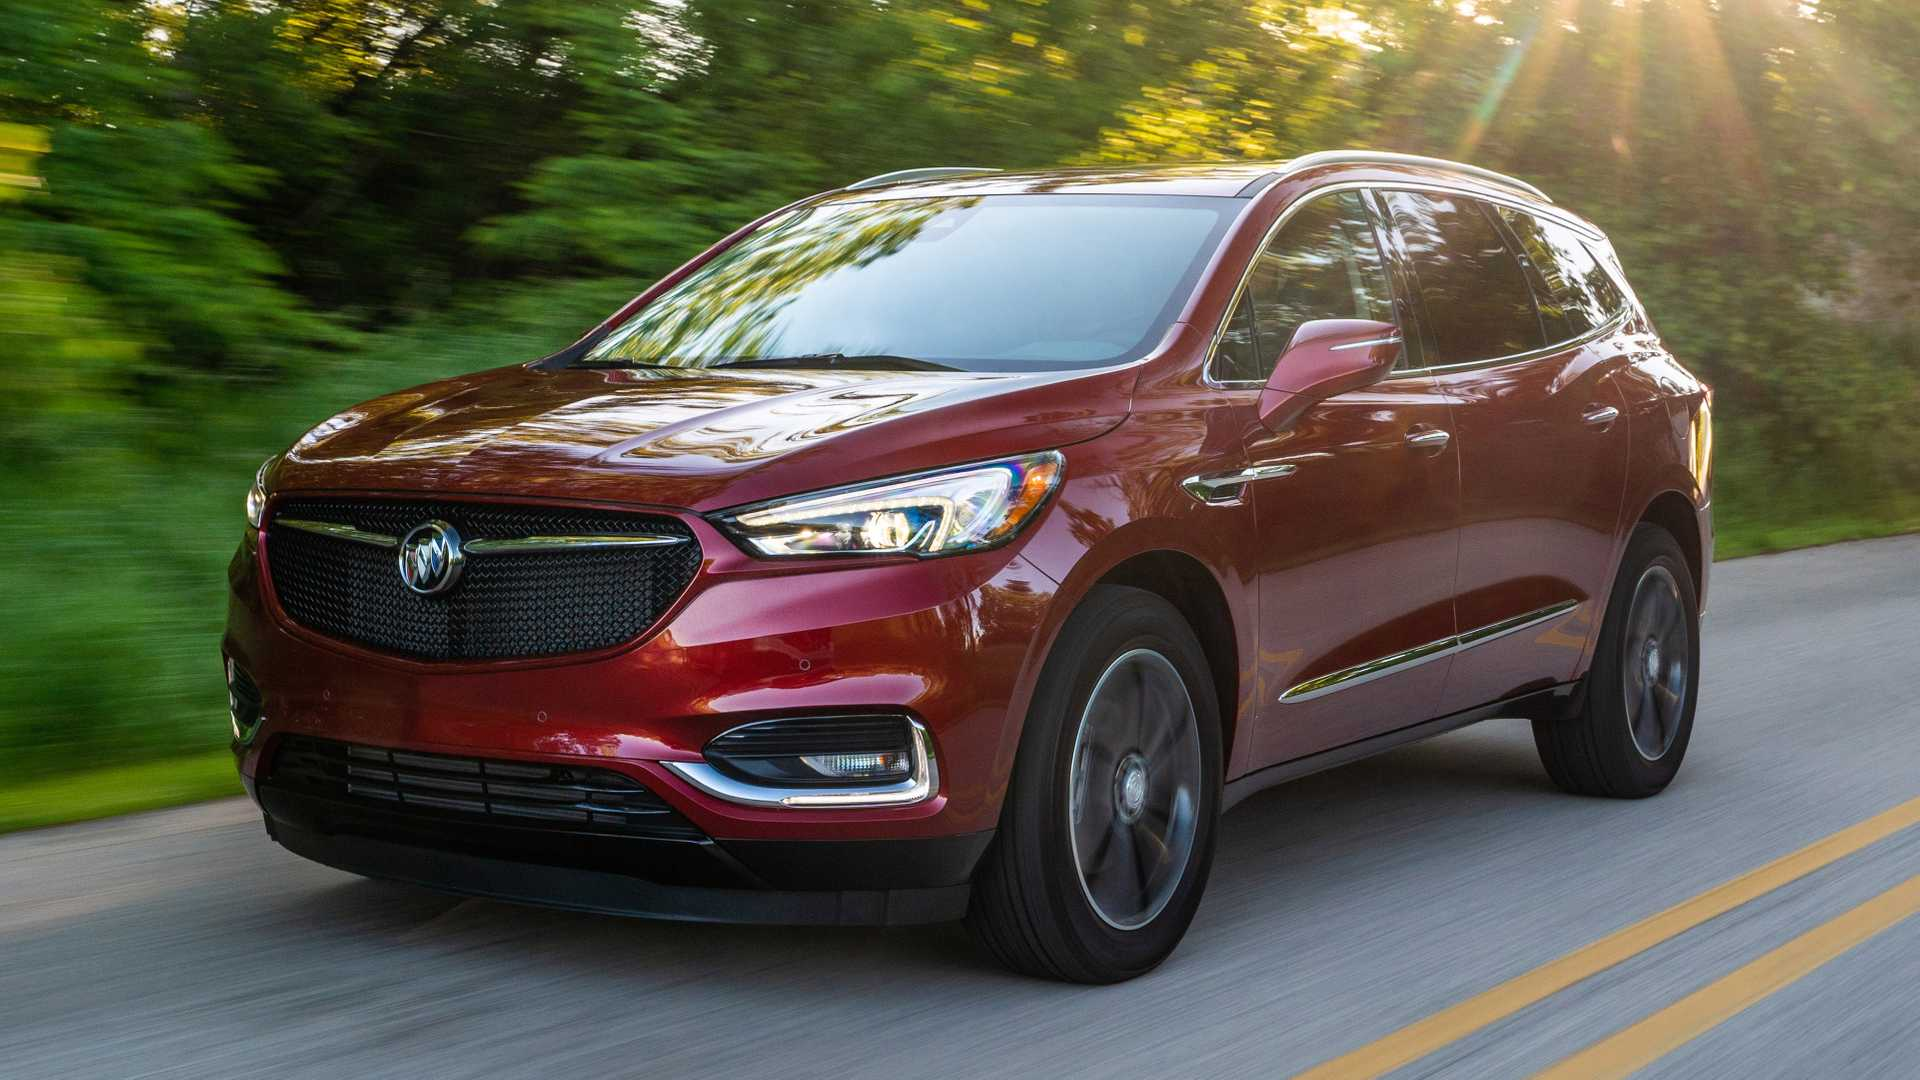 55 All New New Buick Suv For 2020 Price Design And Review